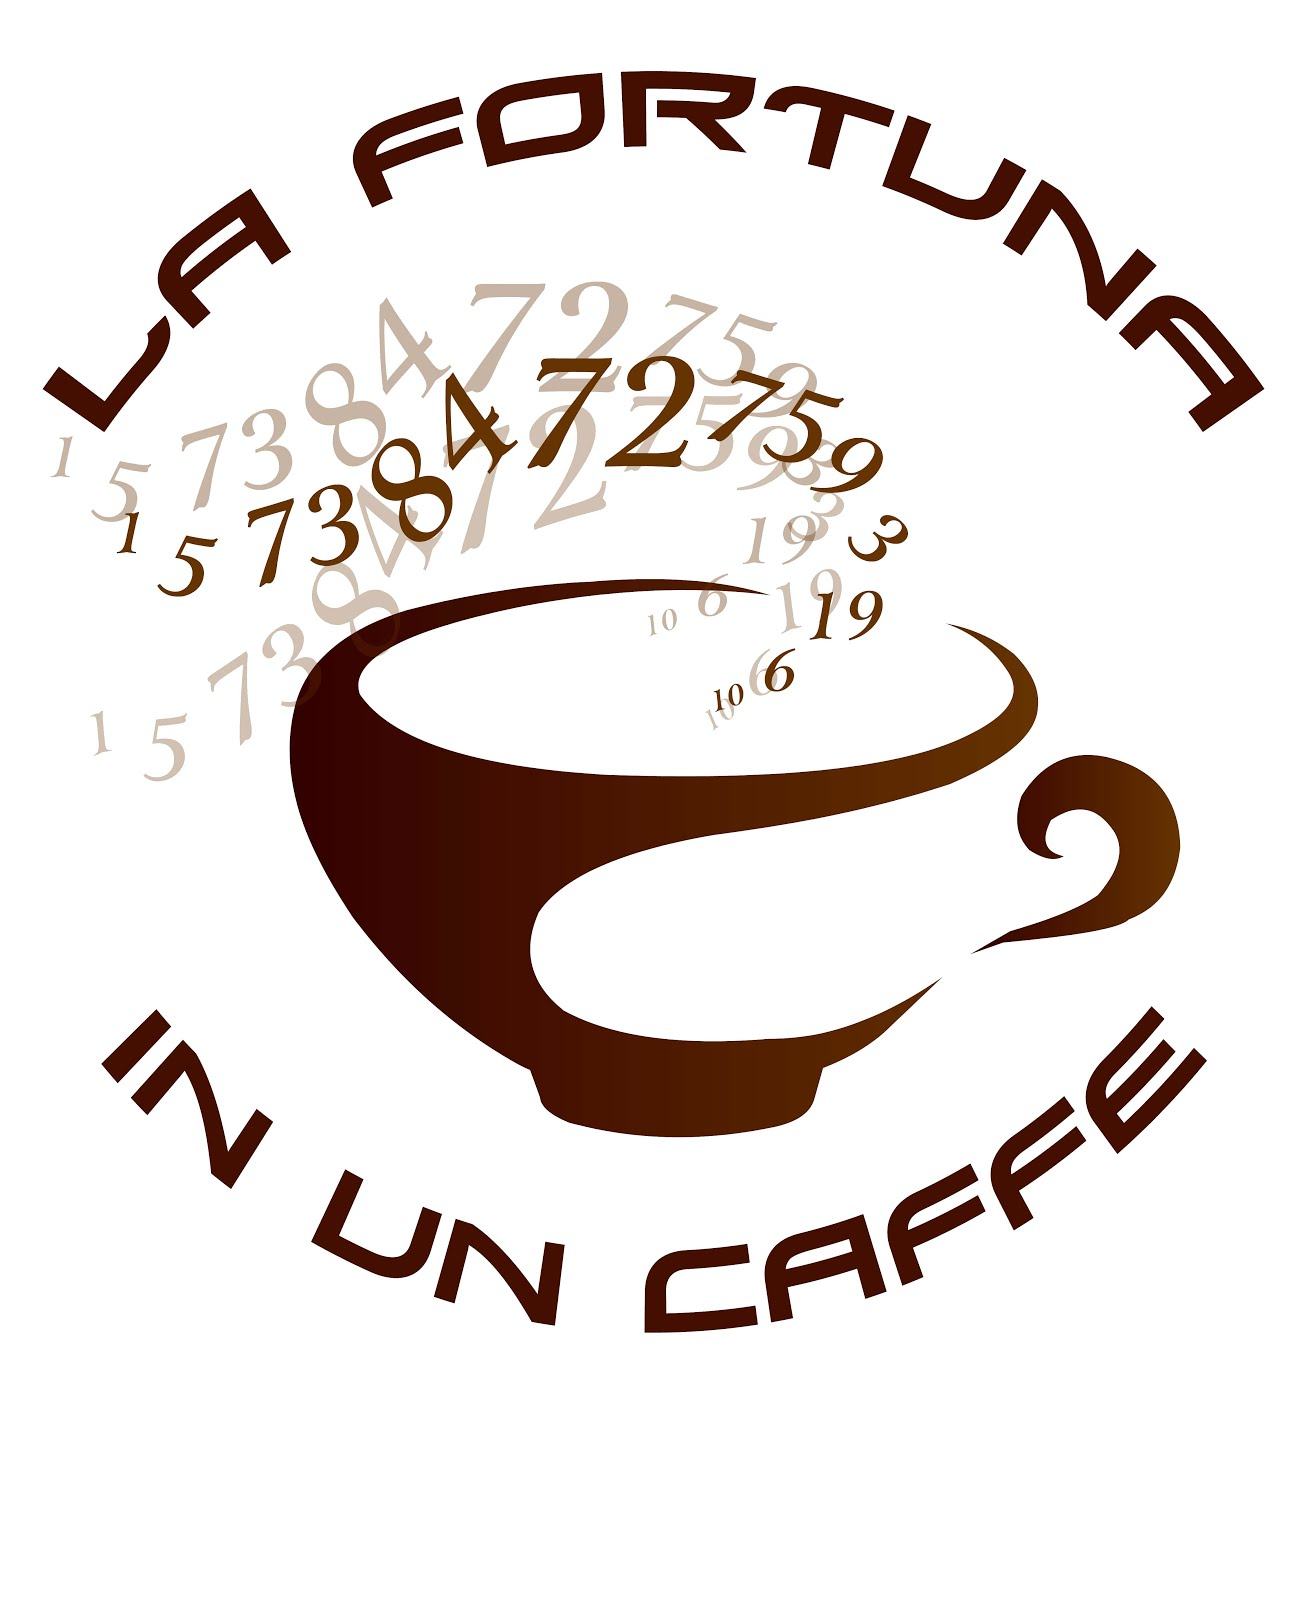 La Fortuna in un Caffe